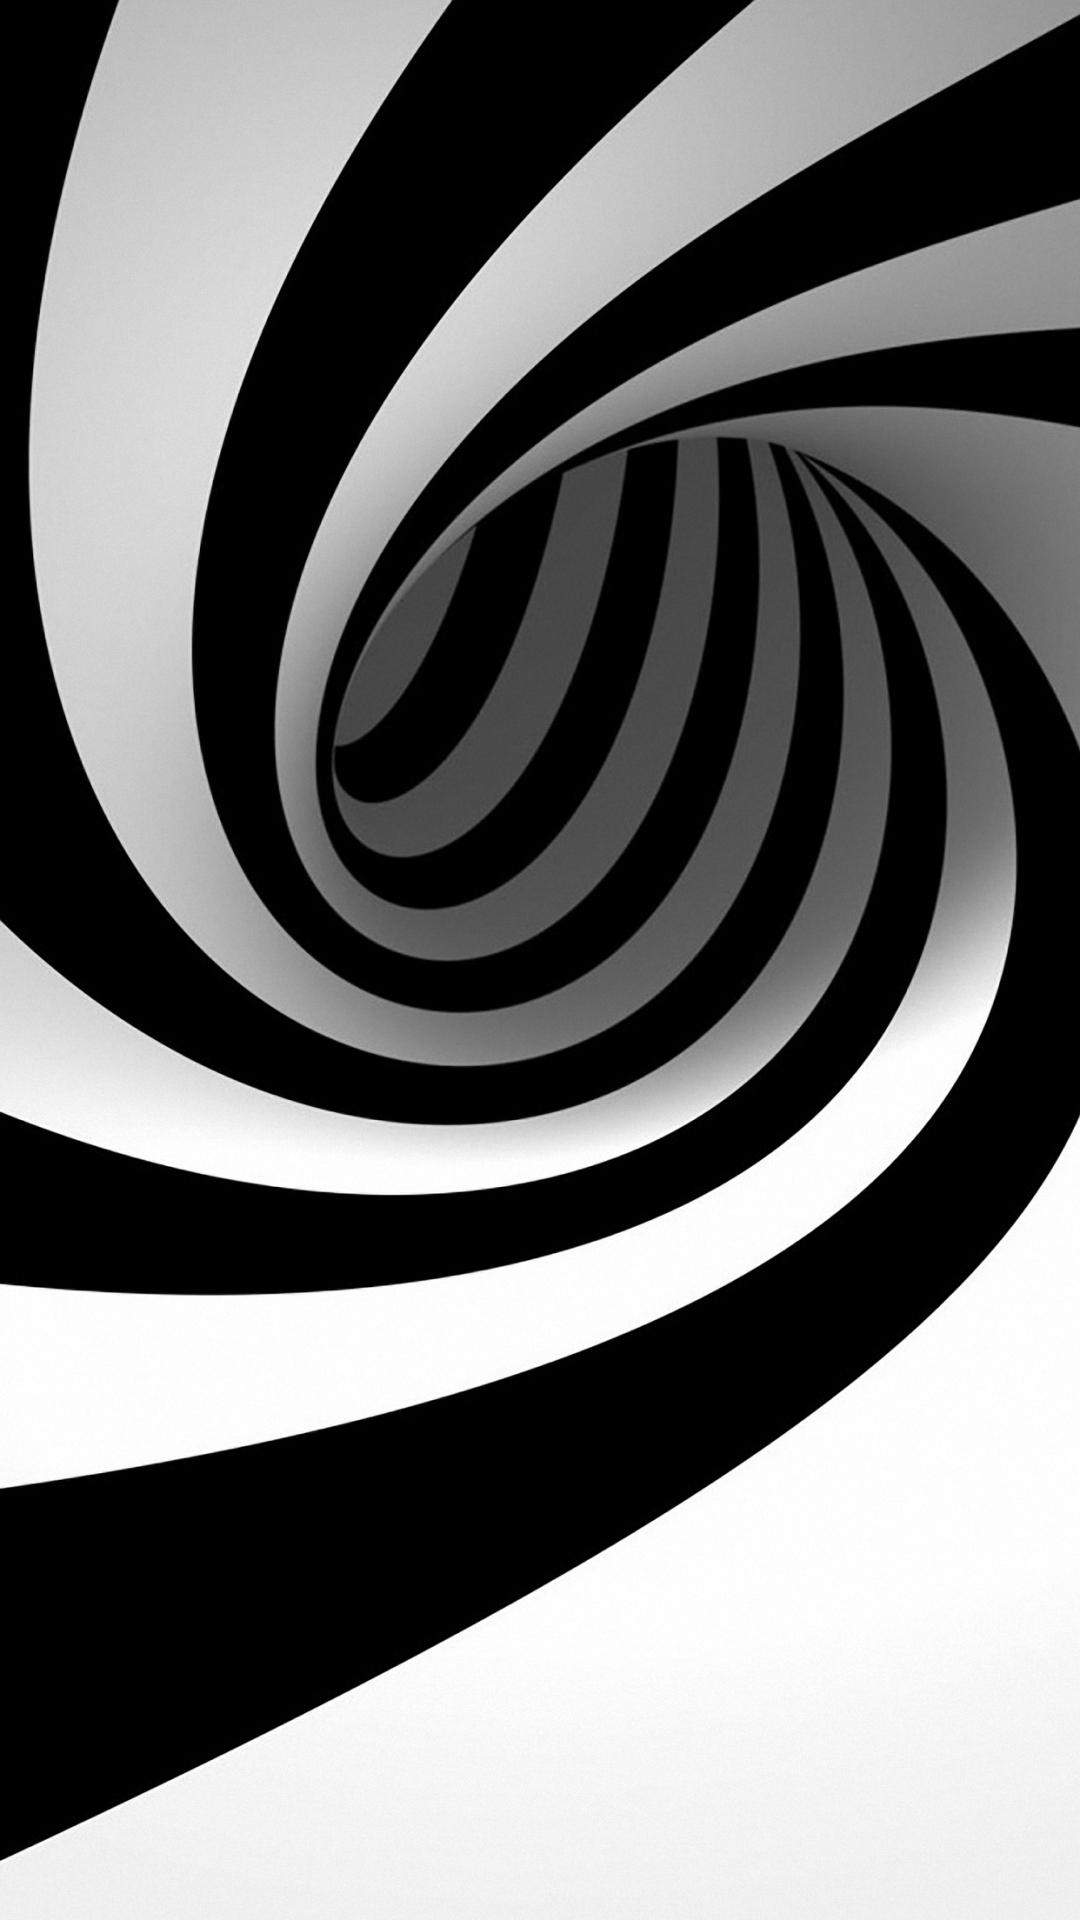 HD 3d black and white wallpaper for iPhone 6 6s plus 1080x1920